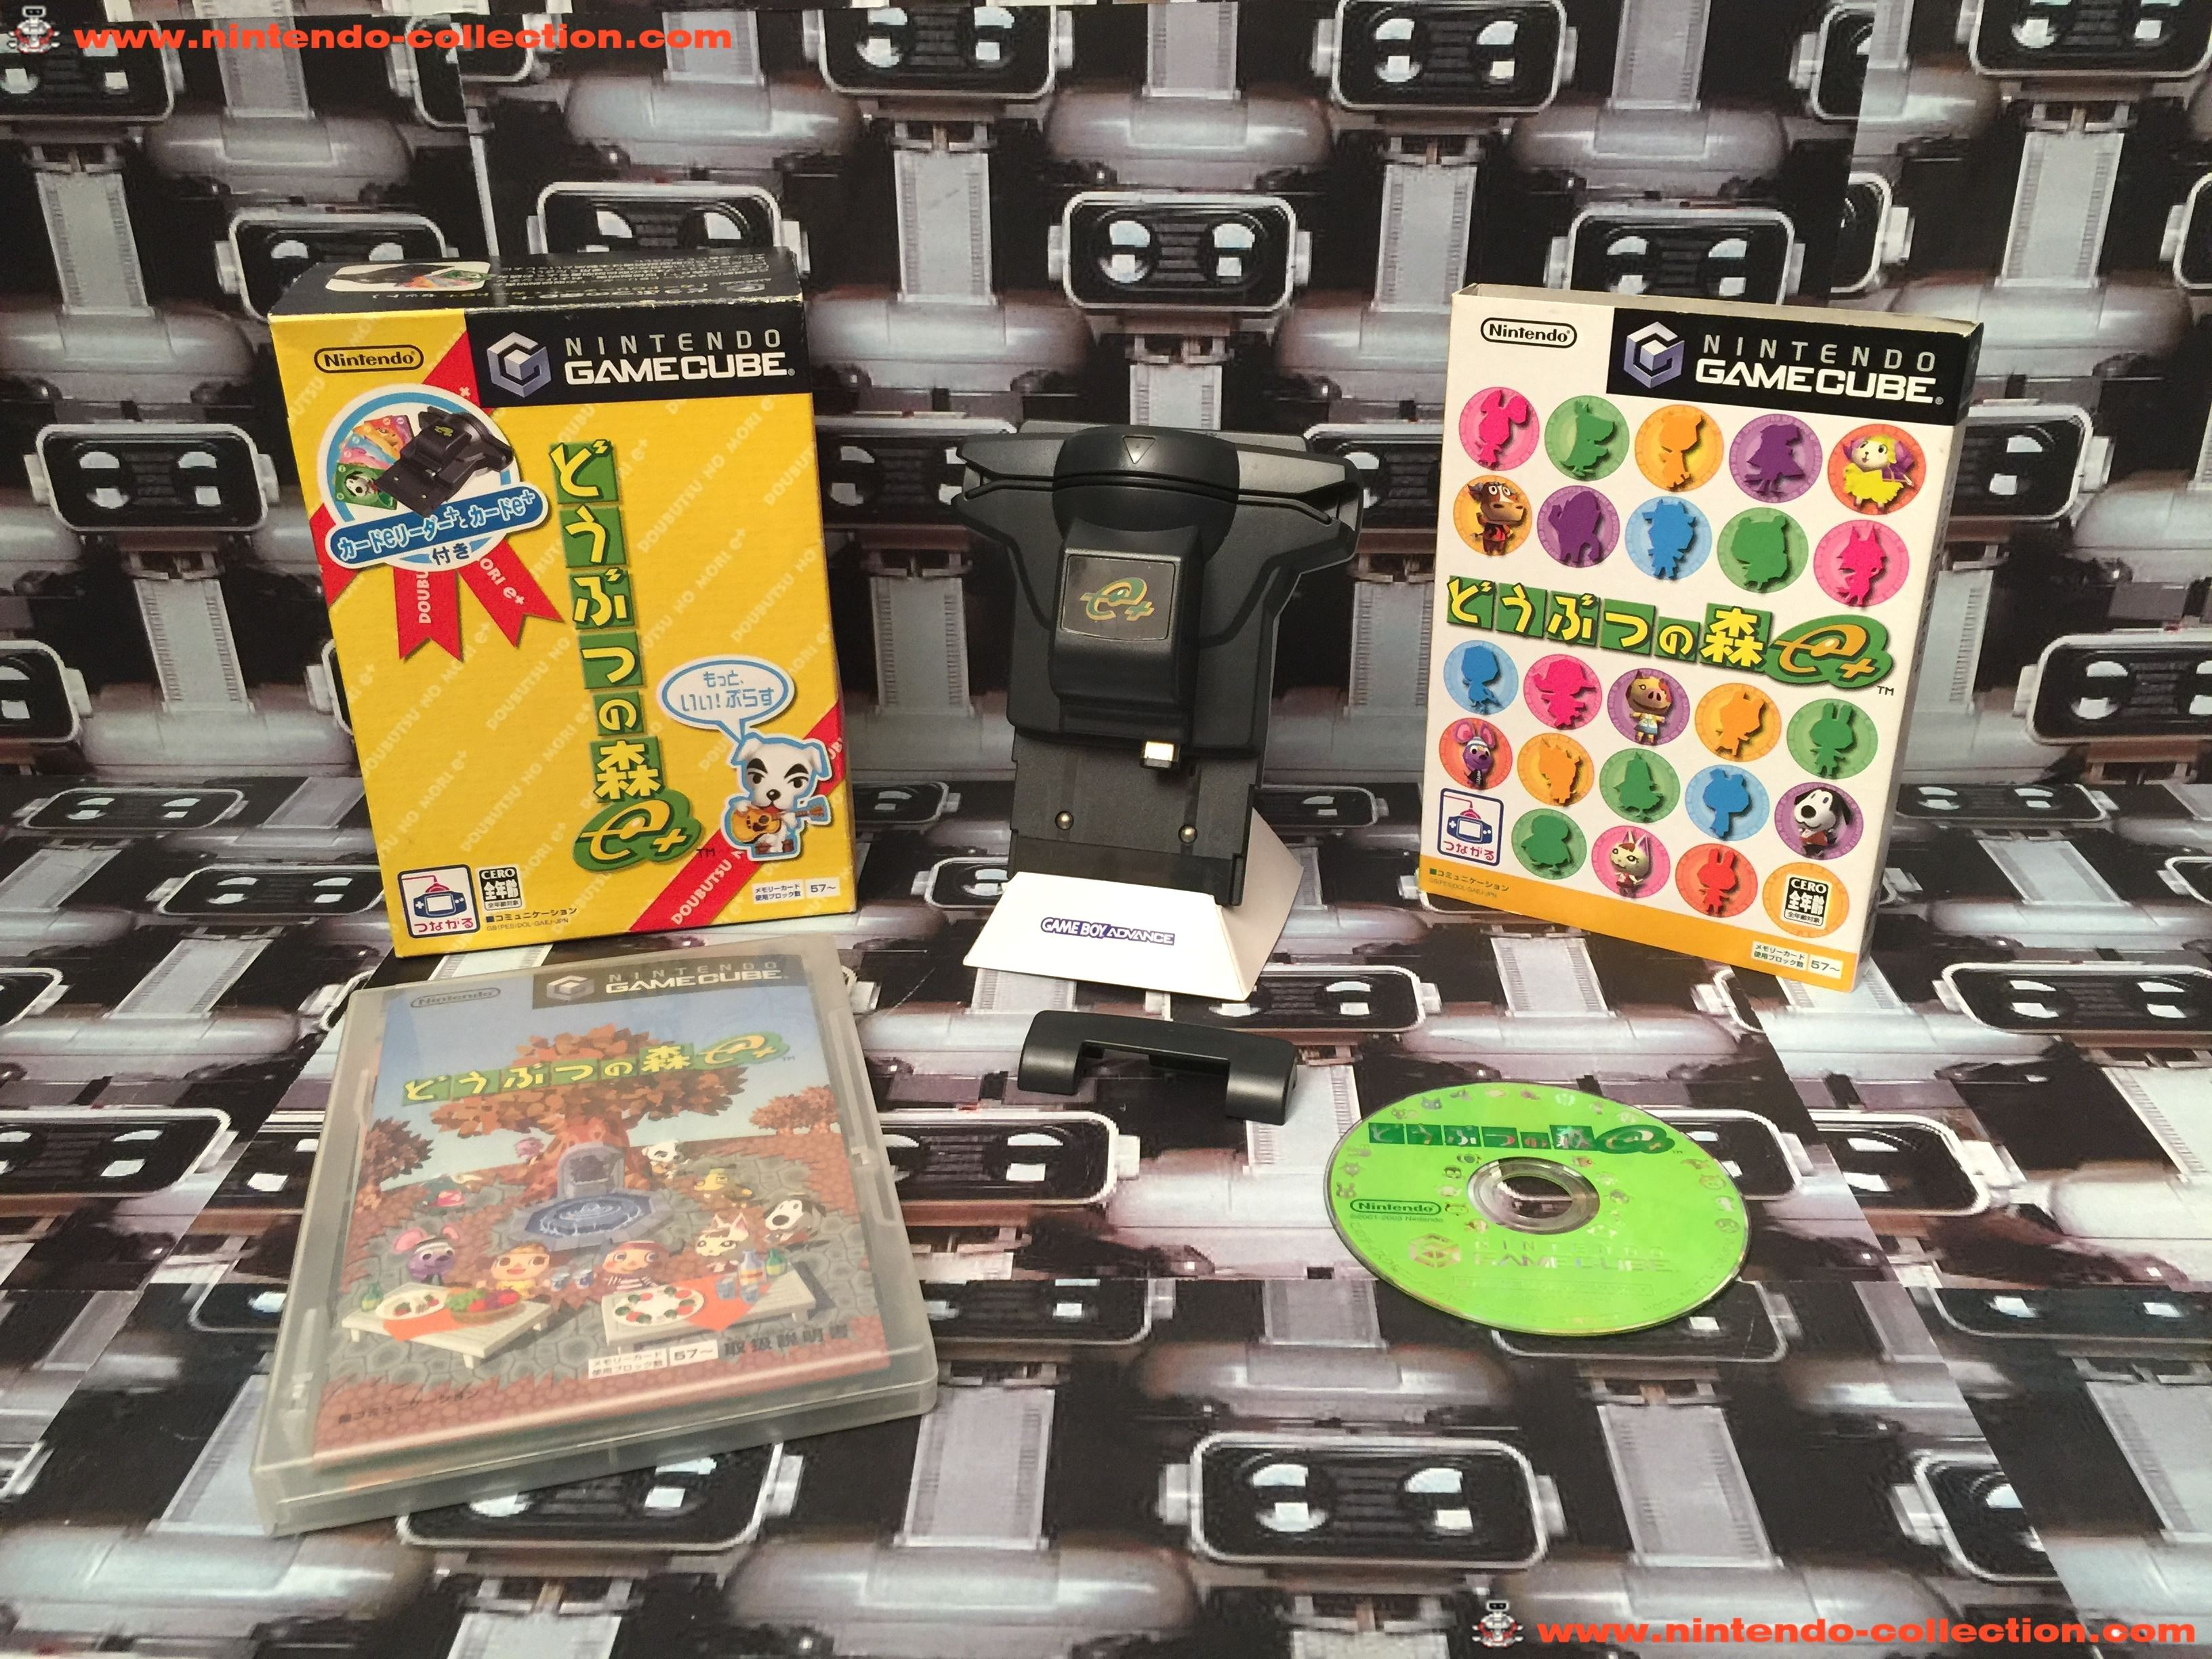 www.nintendo-collection.com - Gamecube Animal Crossing  Doubutsu no Mori Plus E+Gameboy Advance GBA